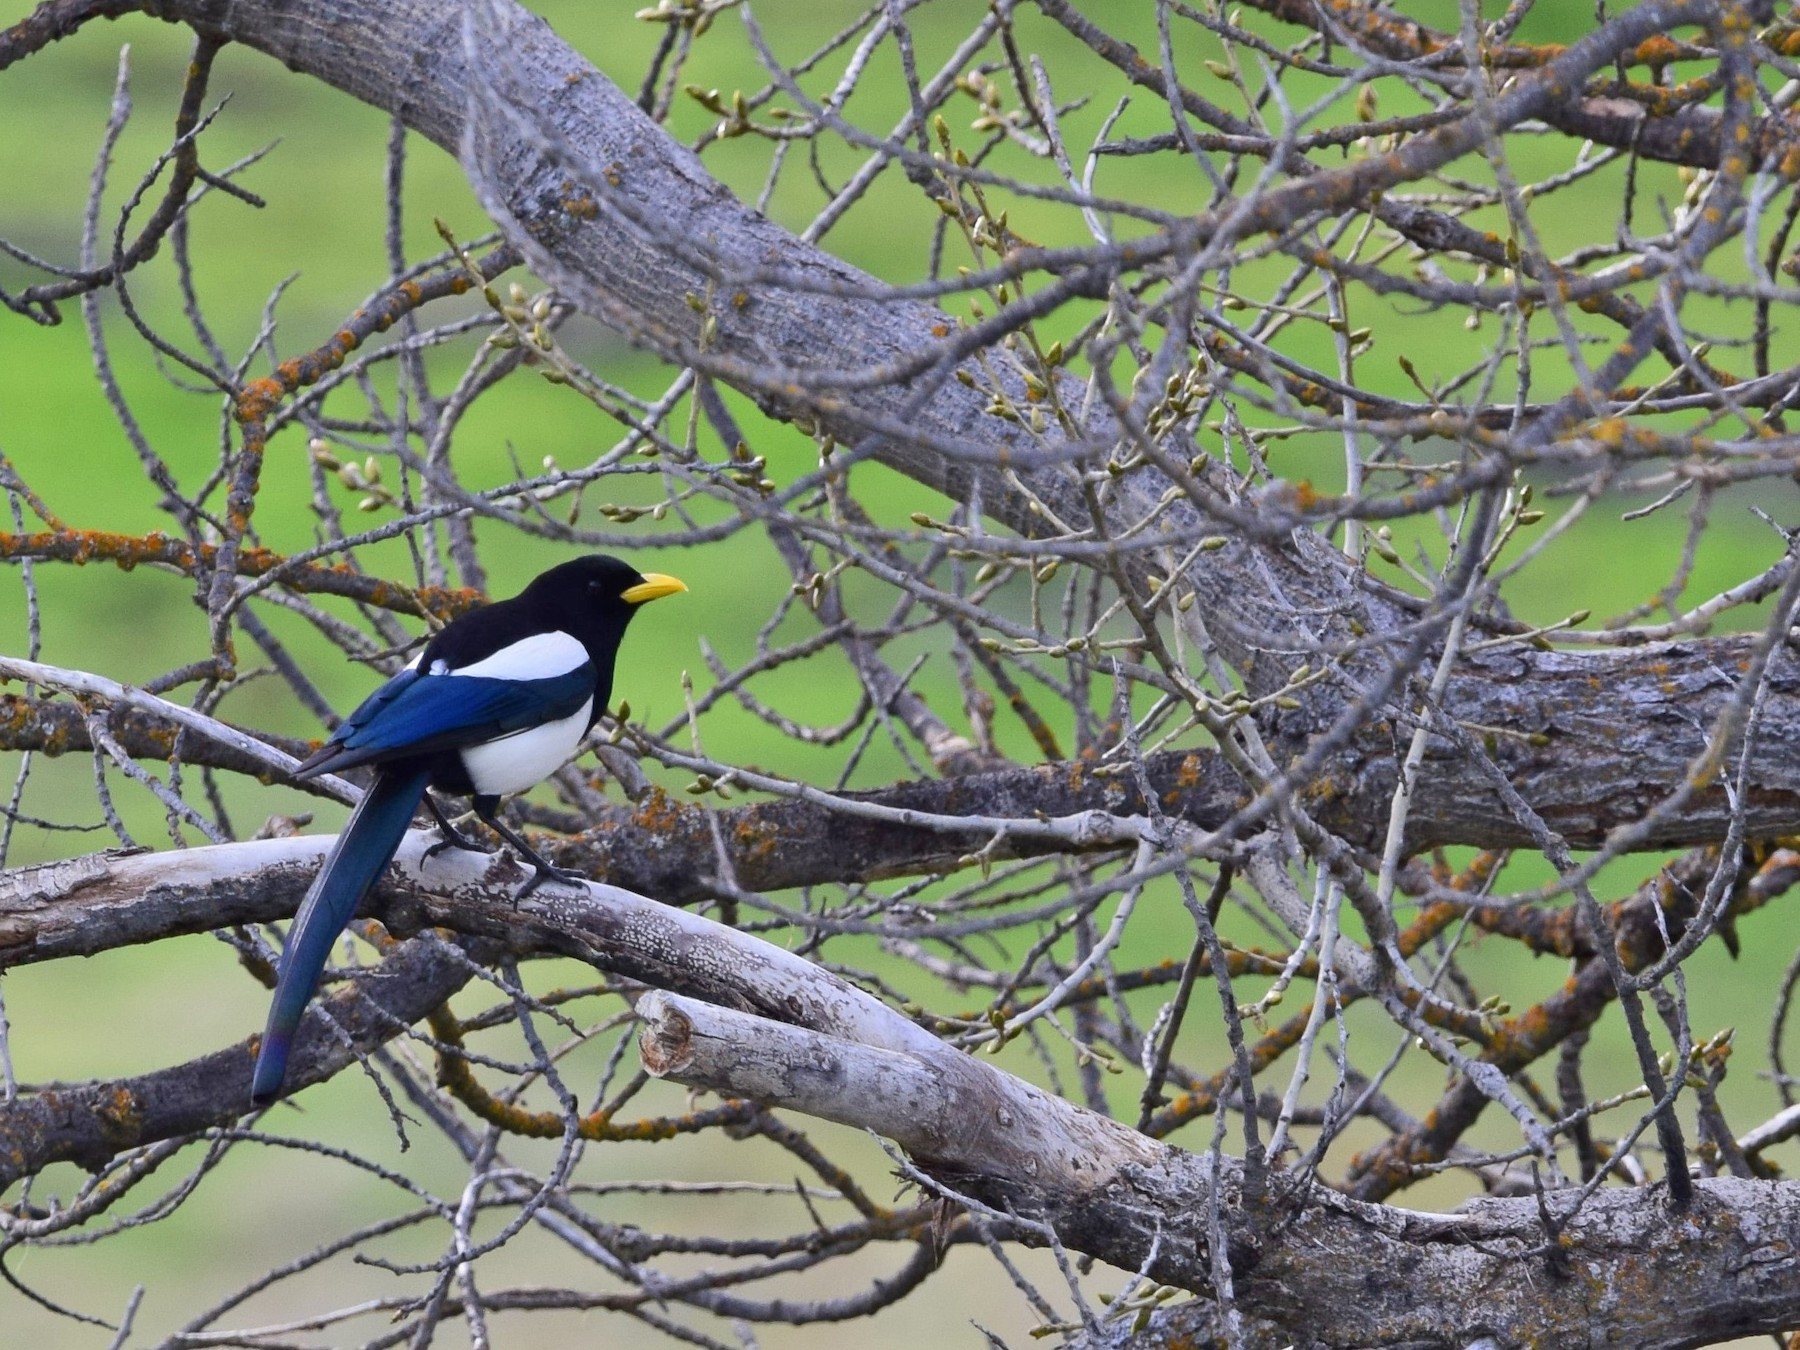 Yellow-billed Magpie - Malory Owen